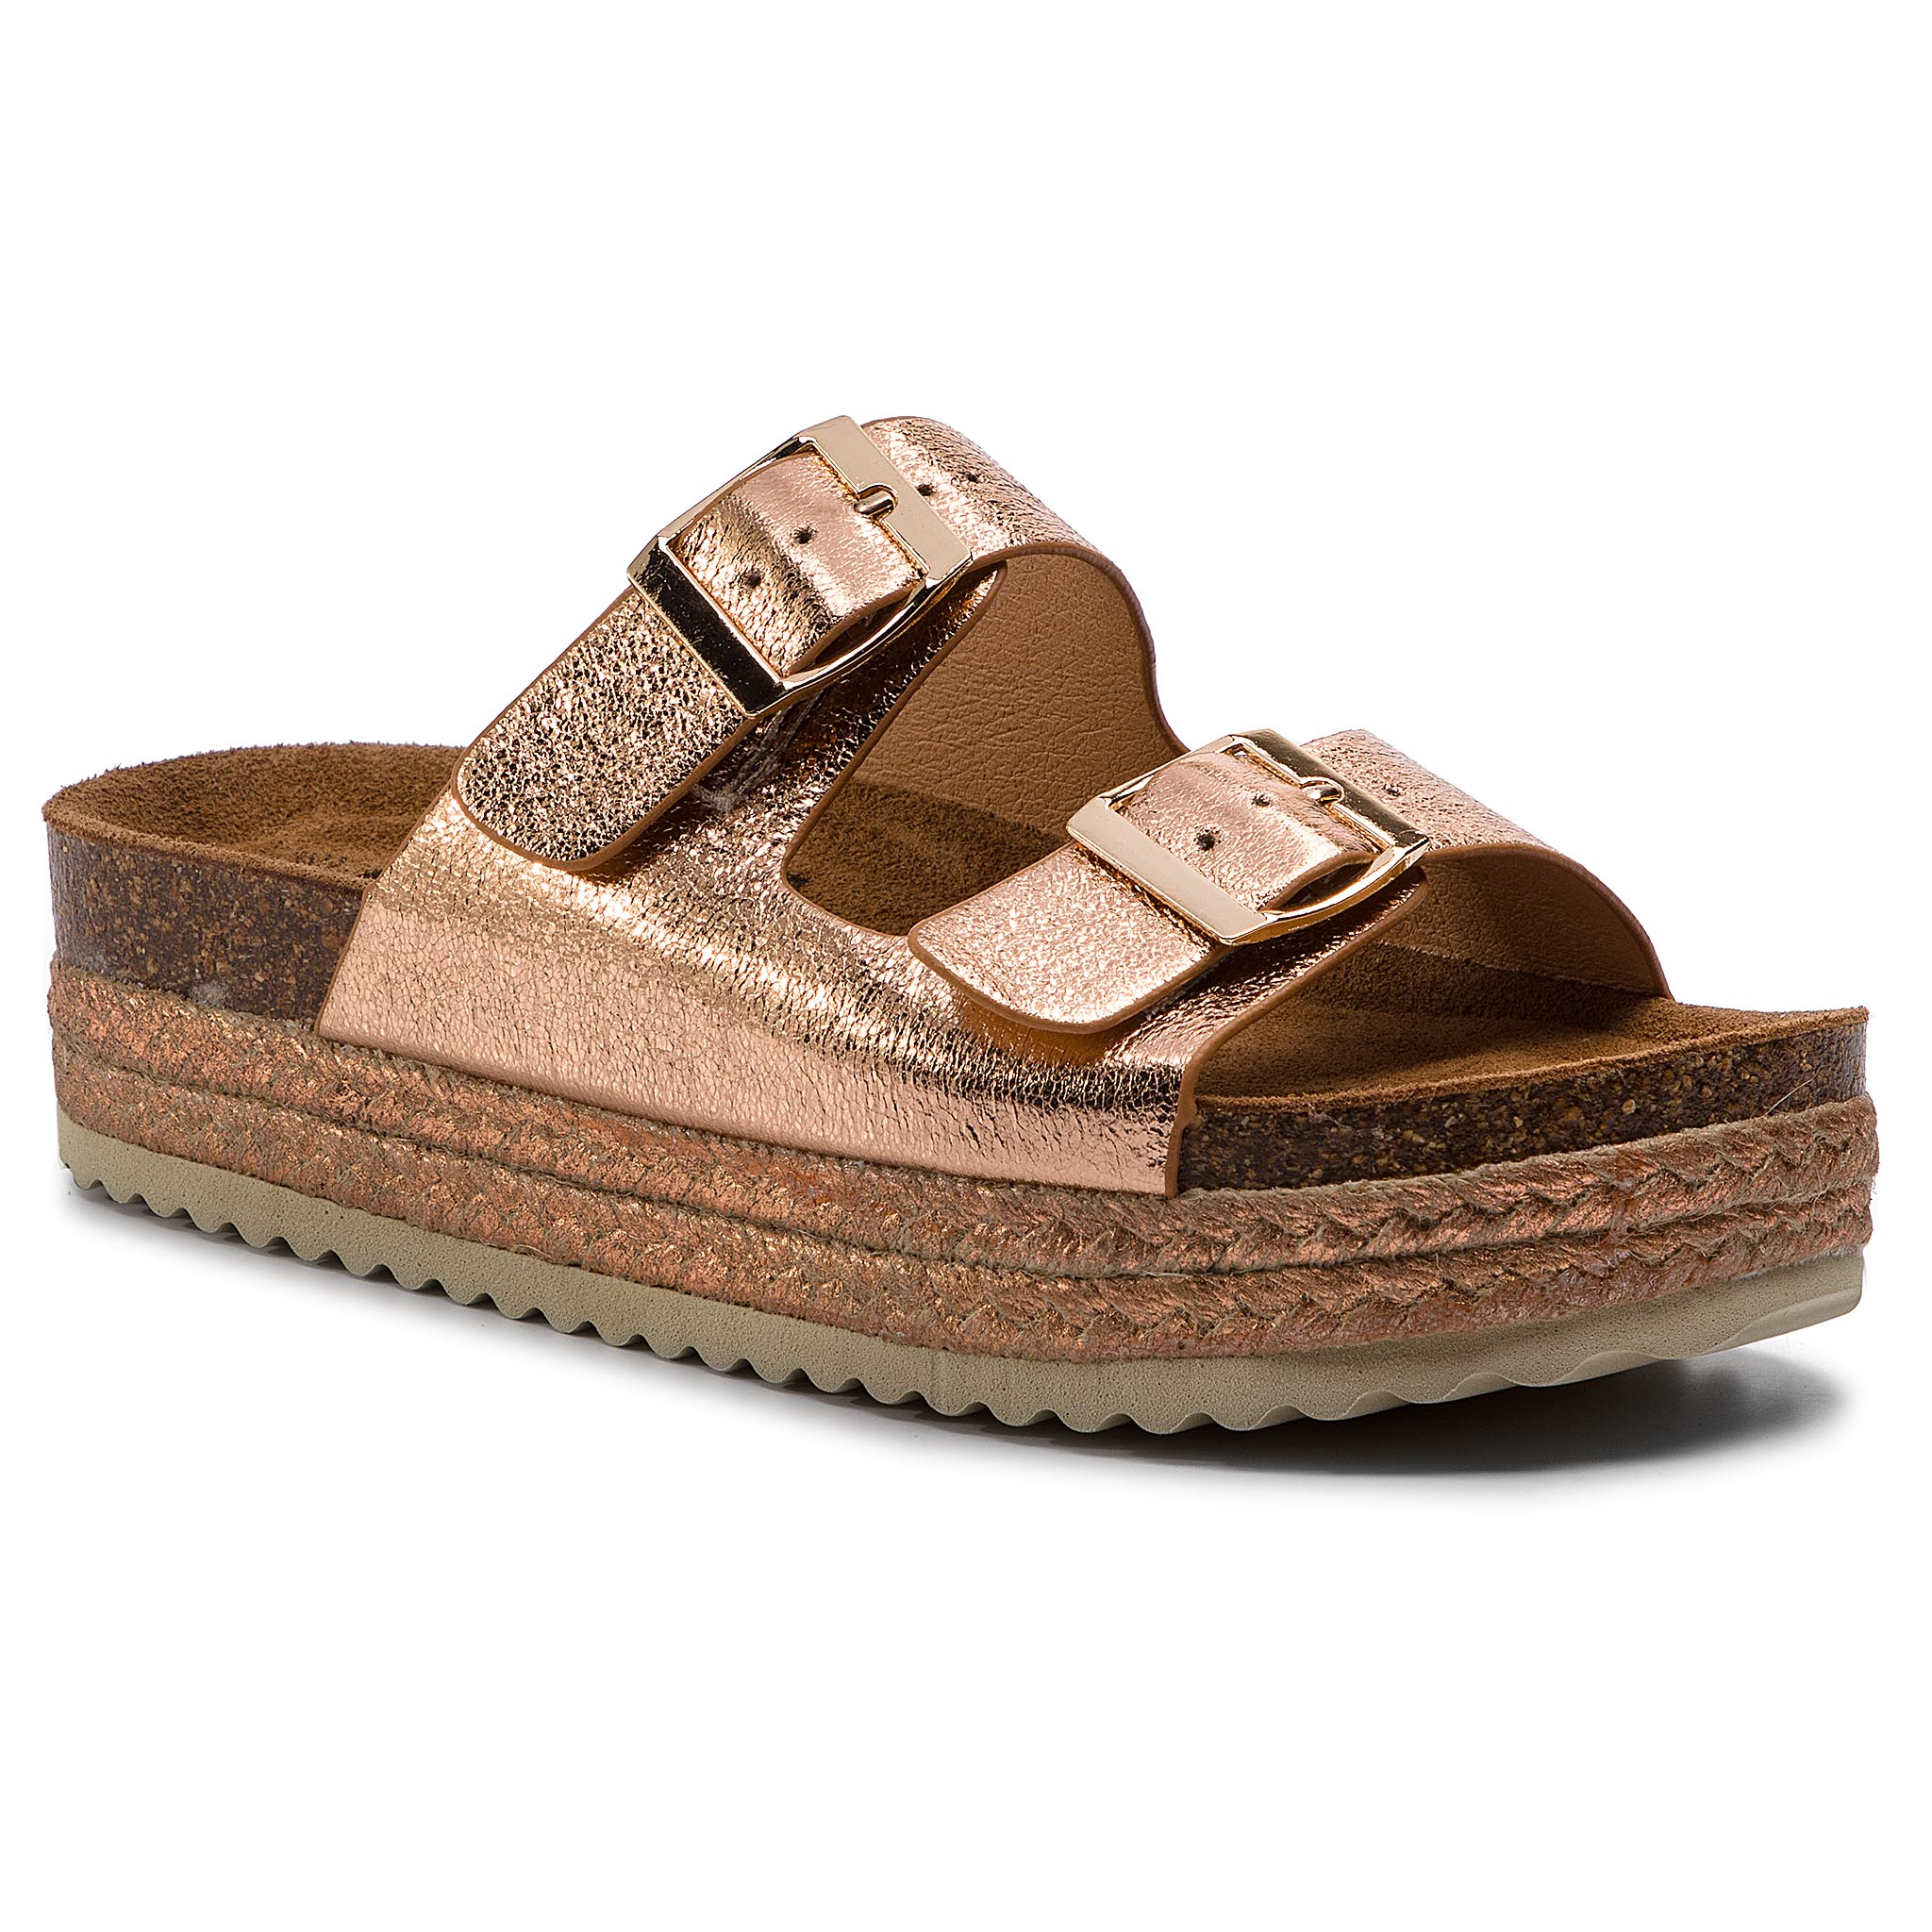 Espadrile Refresh - 69926 Nude imagine epantofi.ro 2021